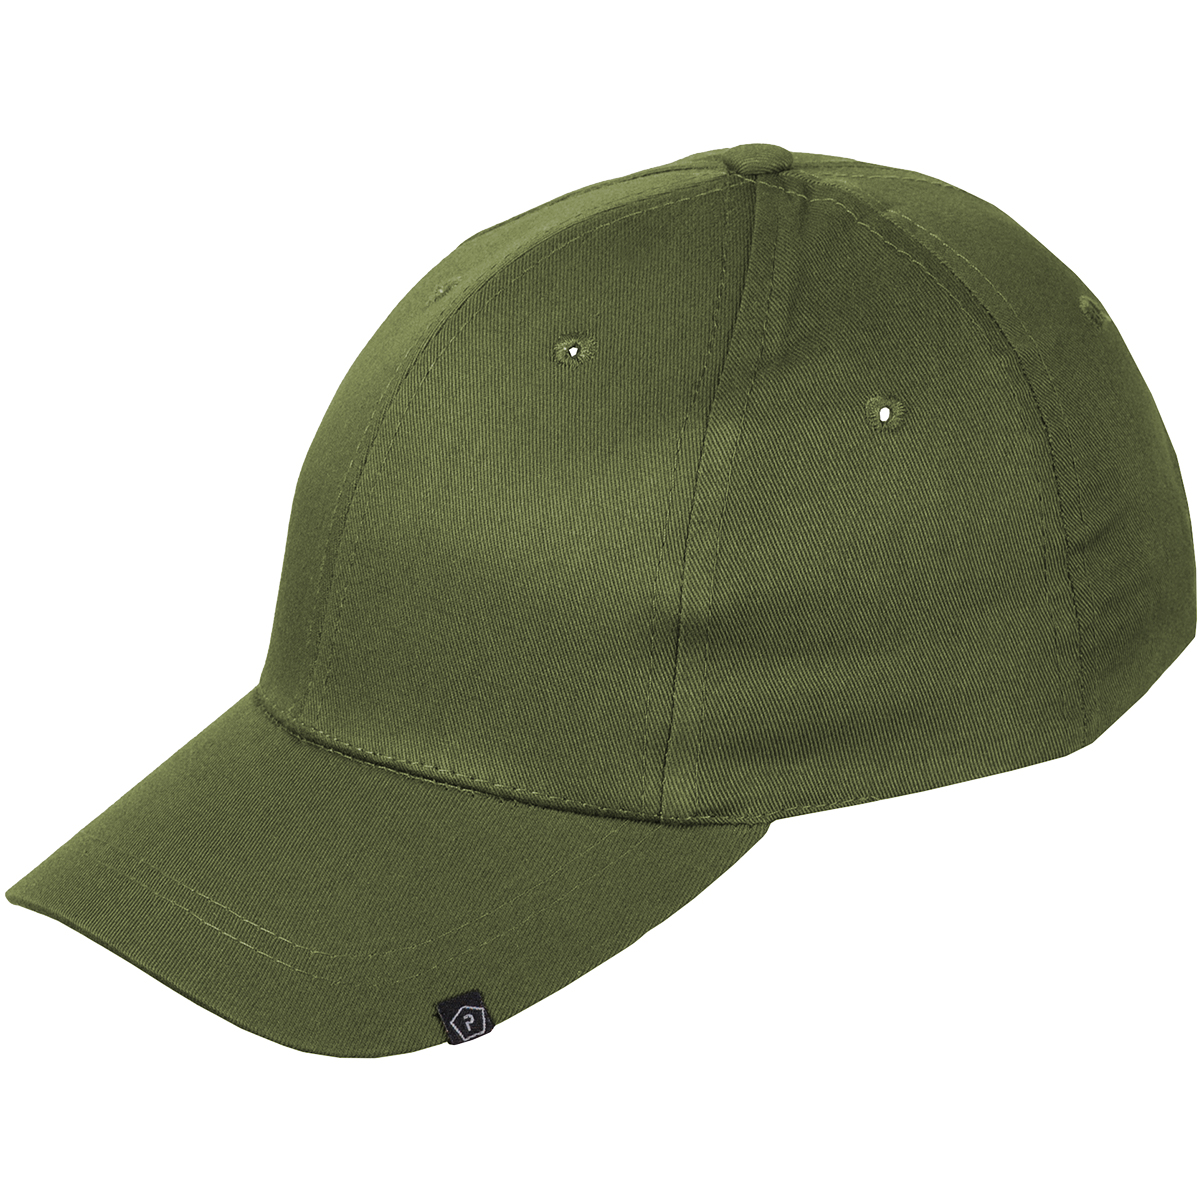 d4fe7aa8 Details about Pentagon Eagle BB Cap Hiking Outdoor Head Cover Mens Twill  Cotton Sun Hat Olive